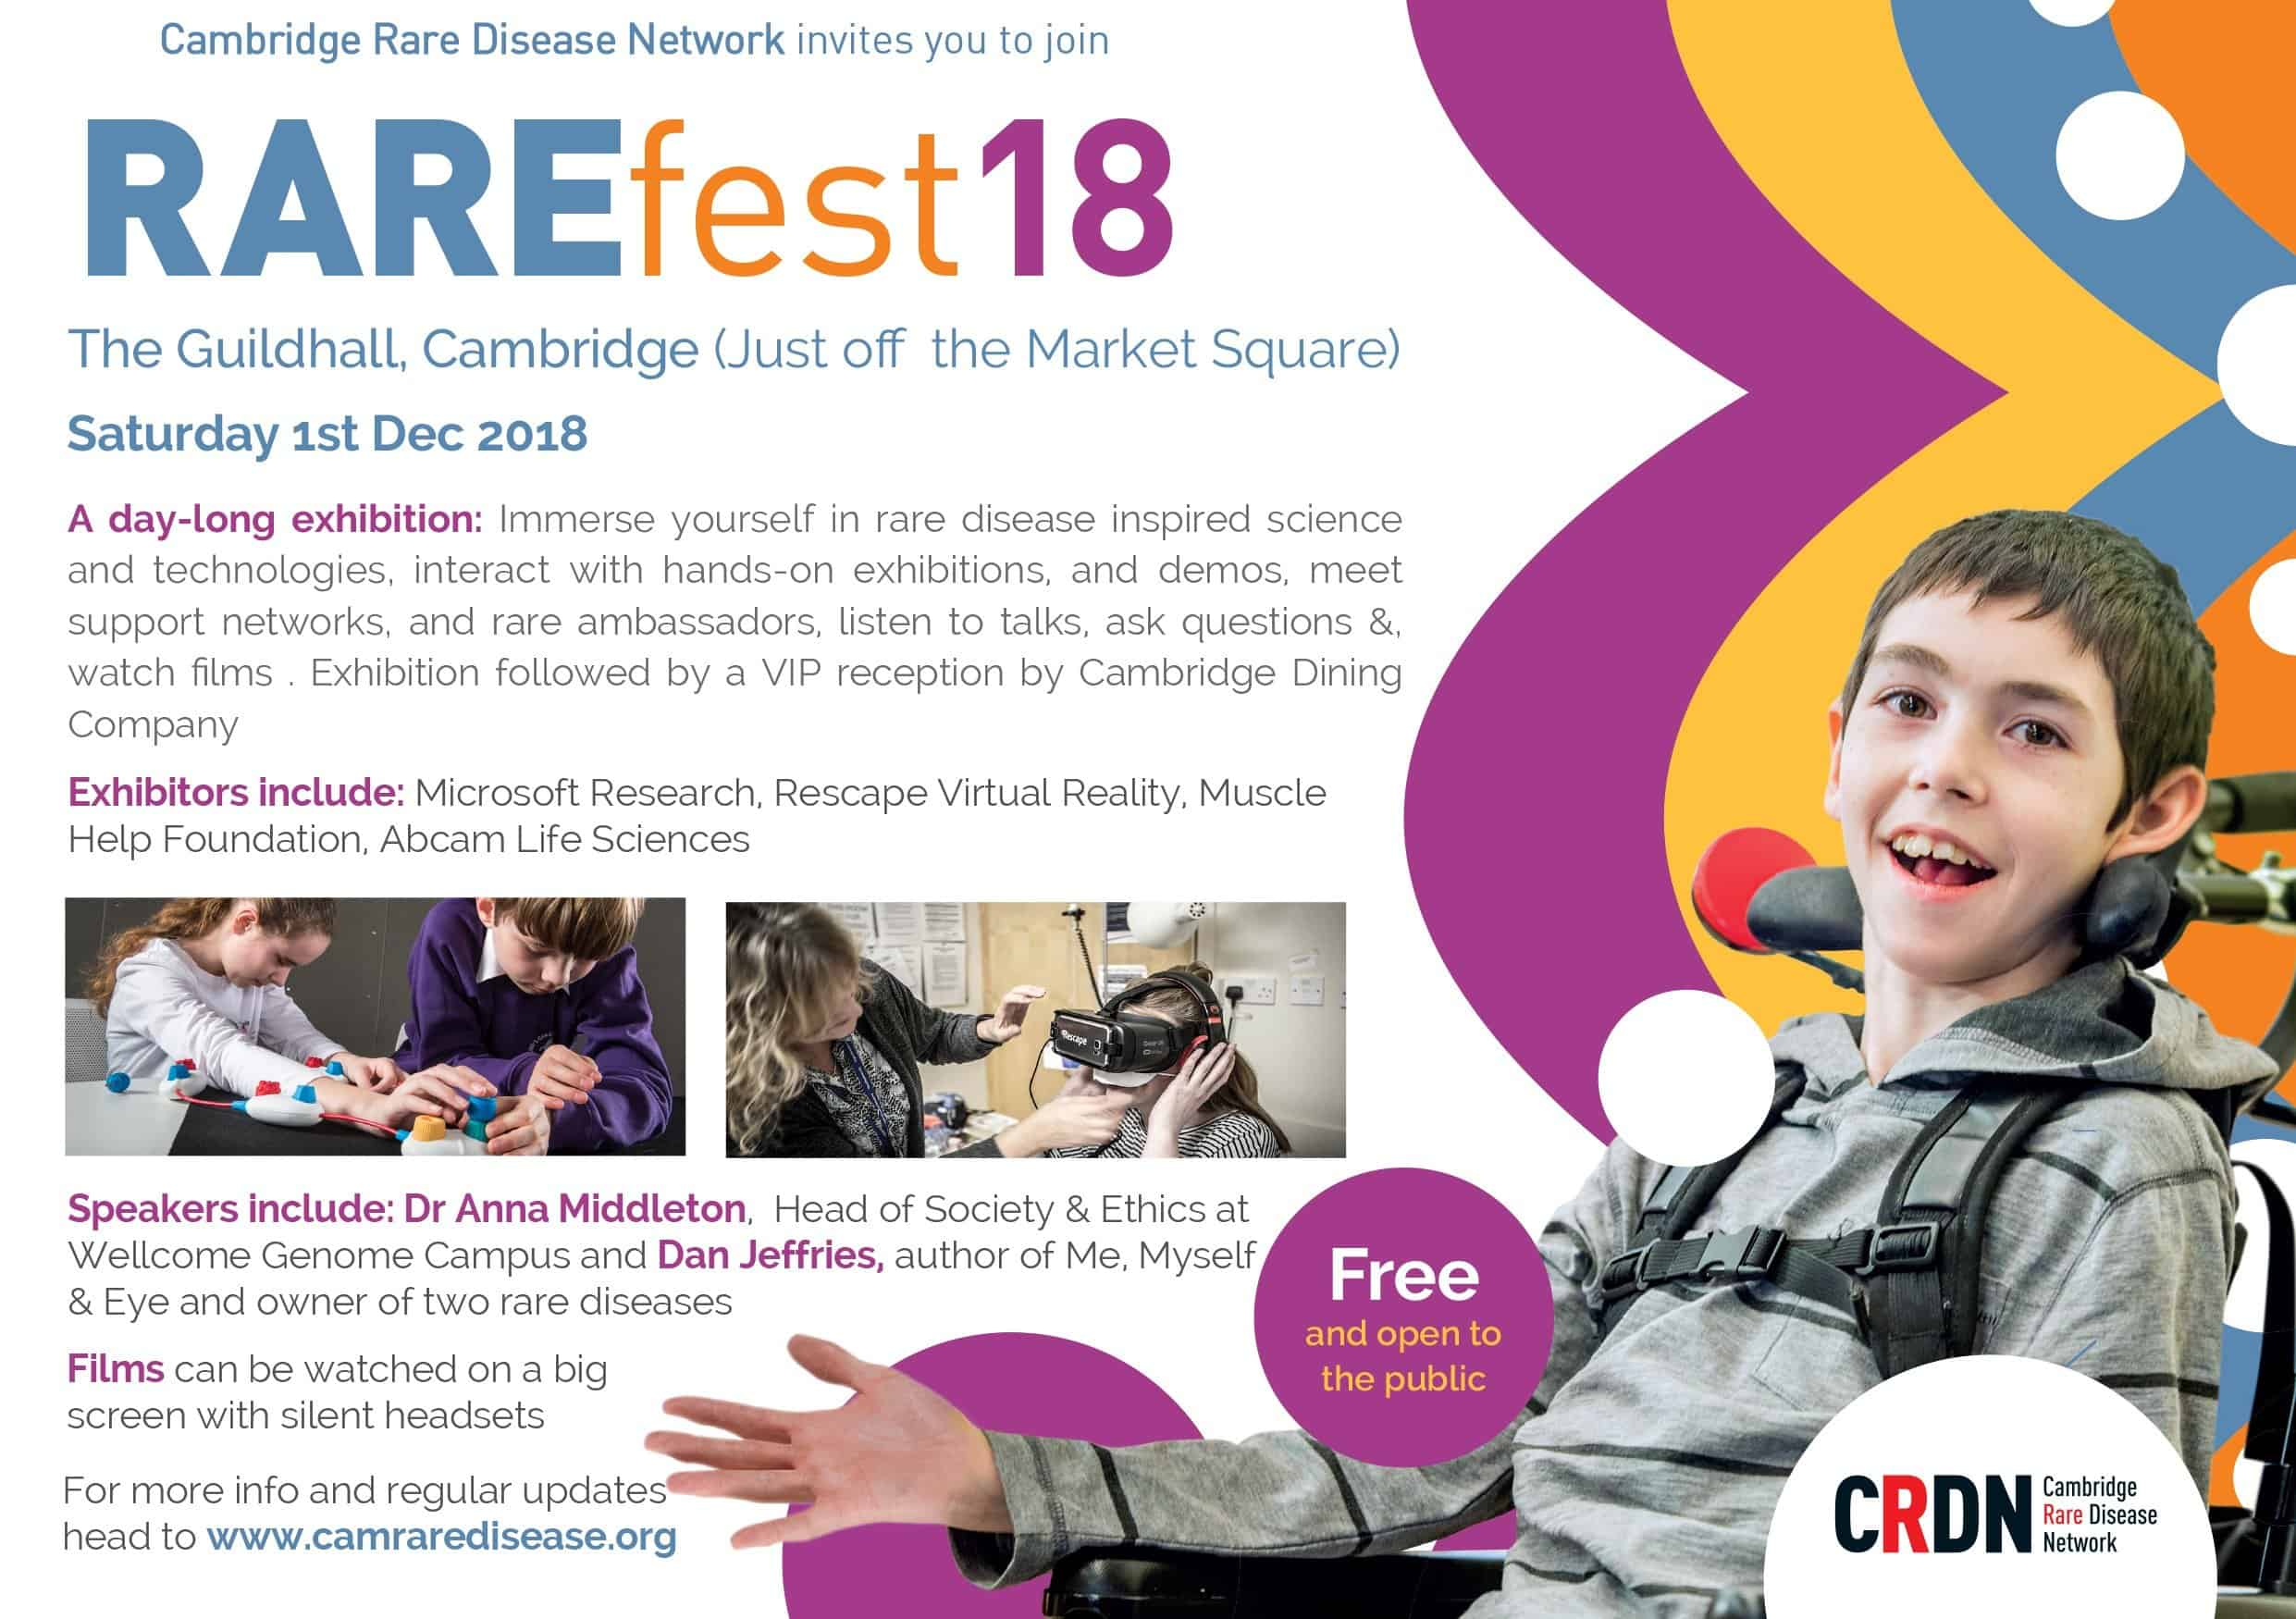 Cambridge Rare Disease Network - RAREfest | The Programme 2